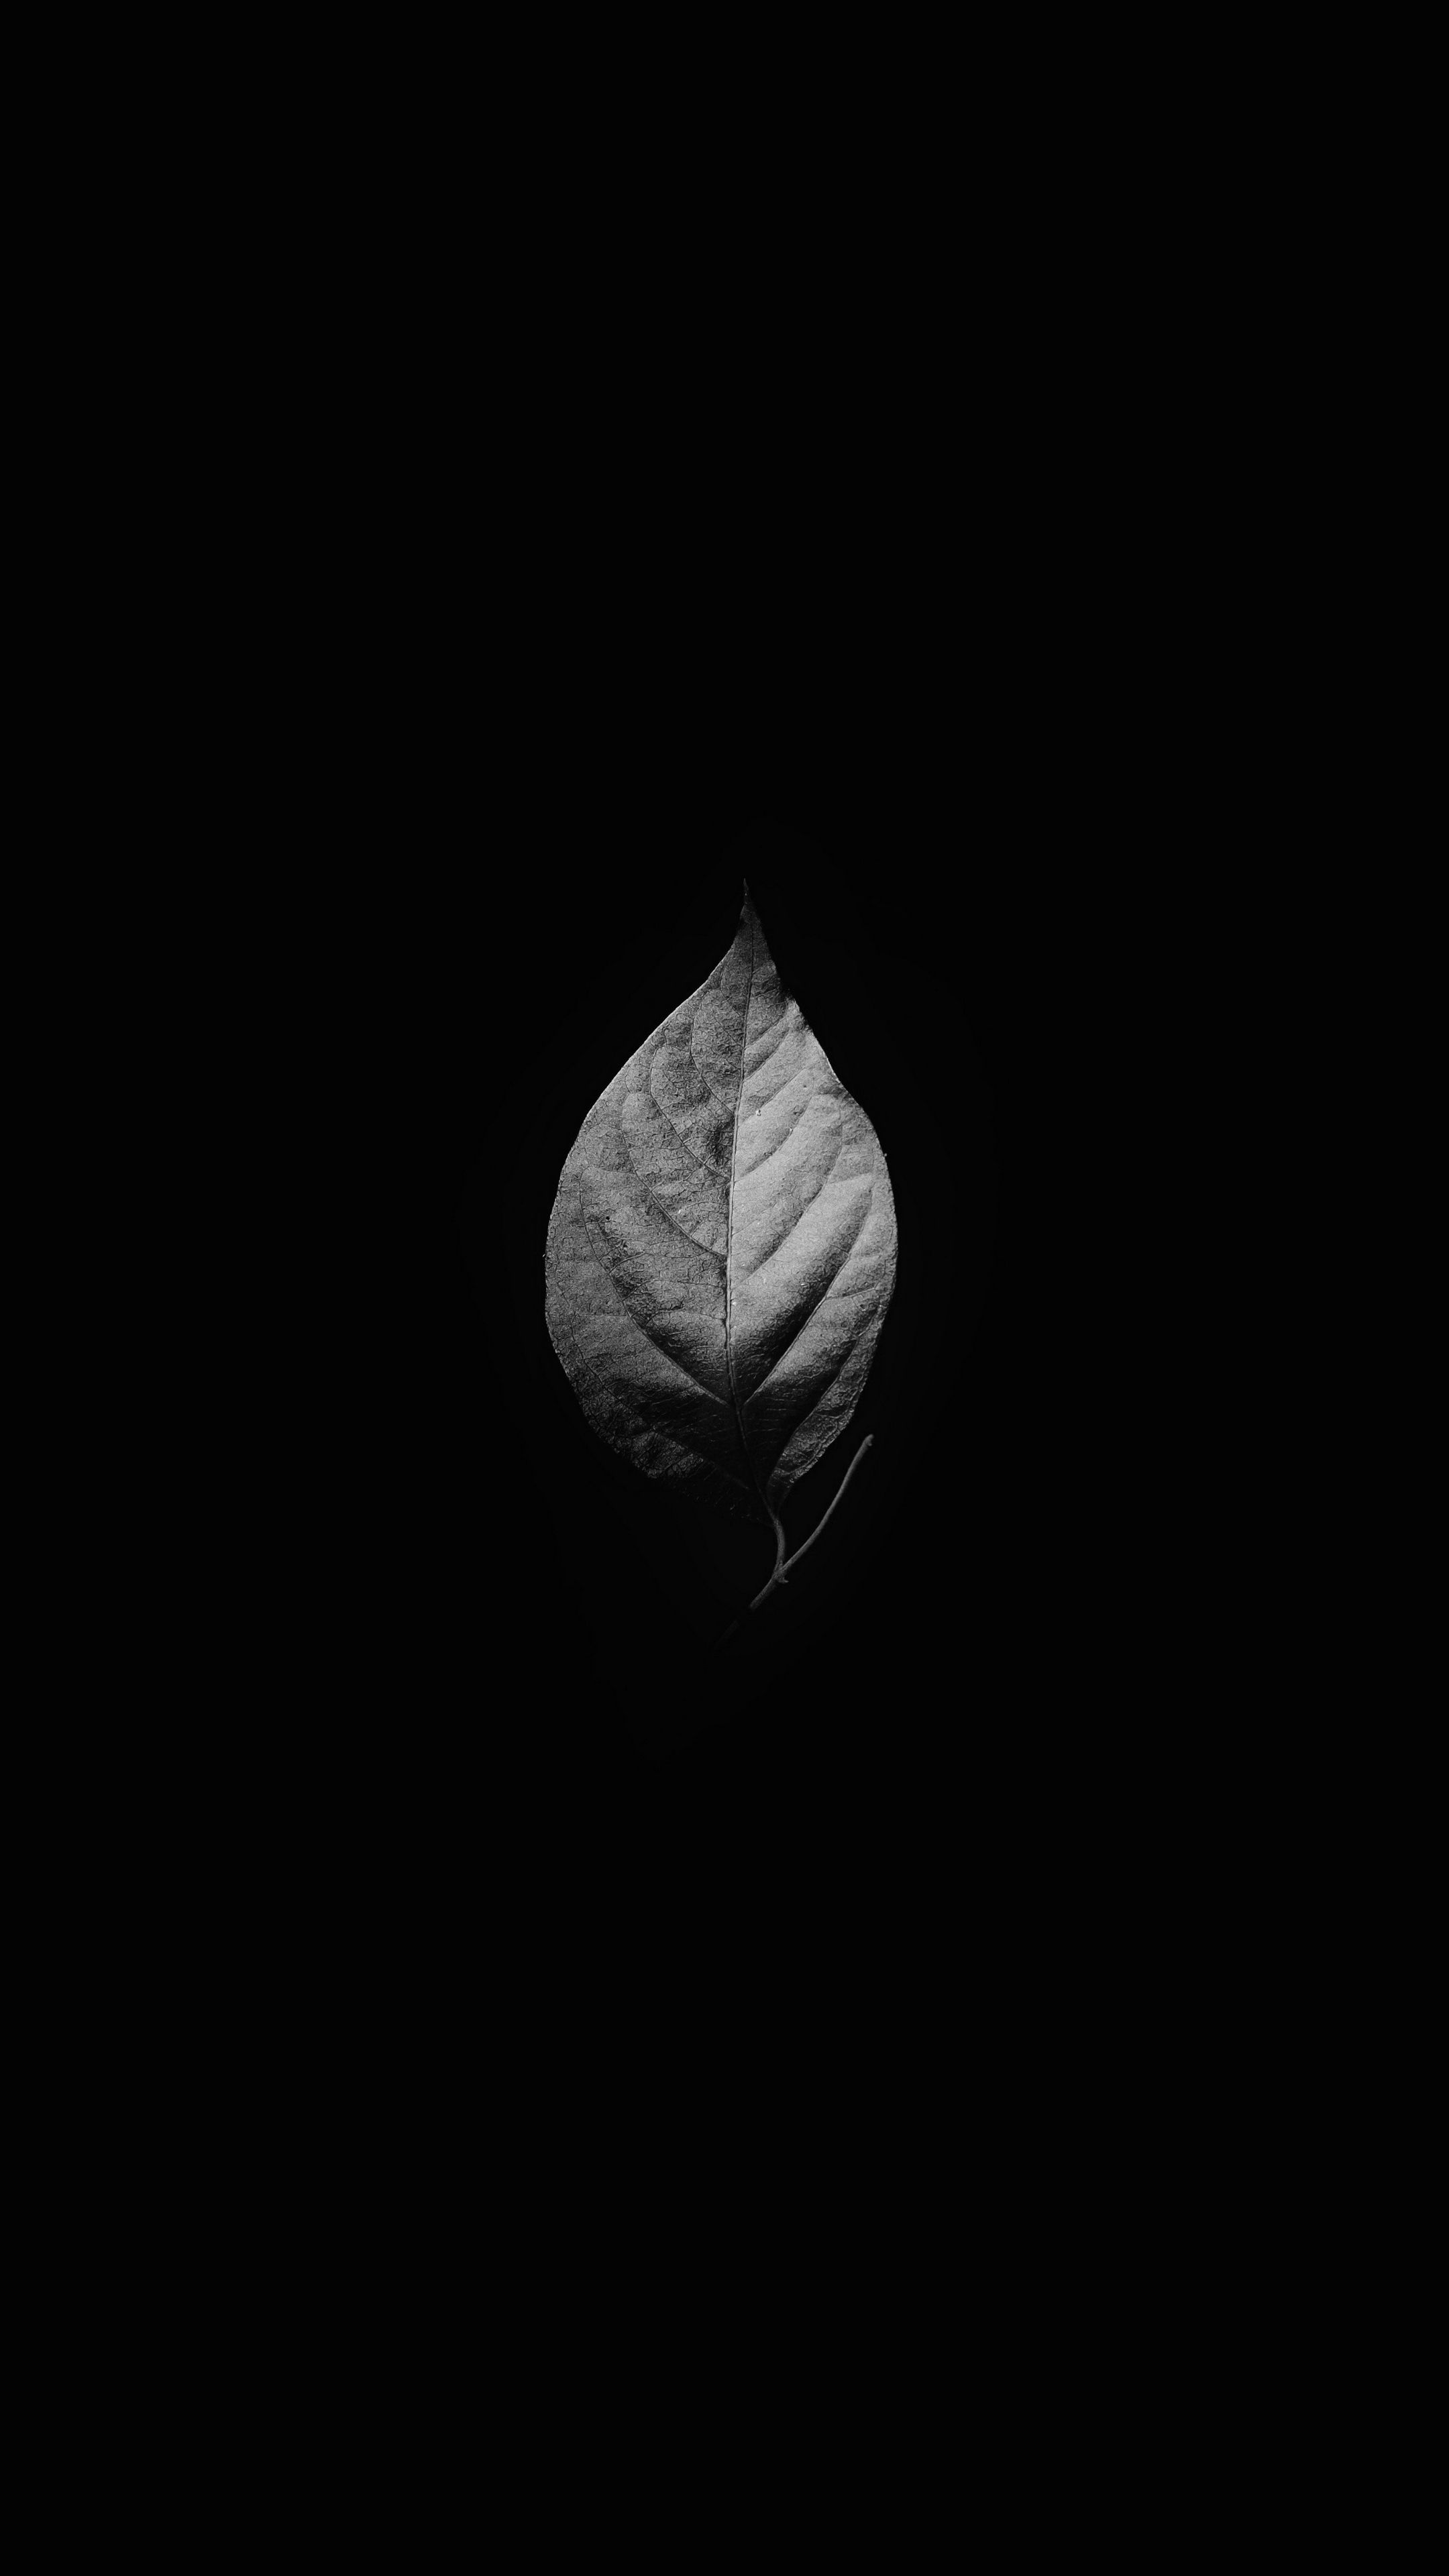 Misc Leaf Bw Blackbackground Wallpapers Hd 4k Background For Android Black Background Wallpaper Black And White Wallpaper Iphone Black Wallpaper